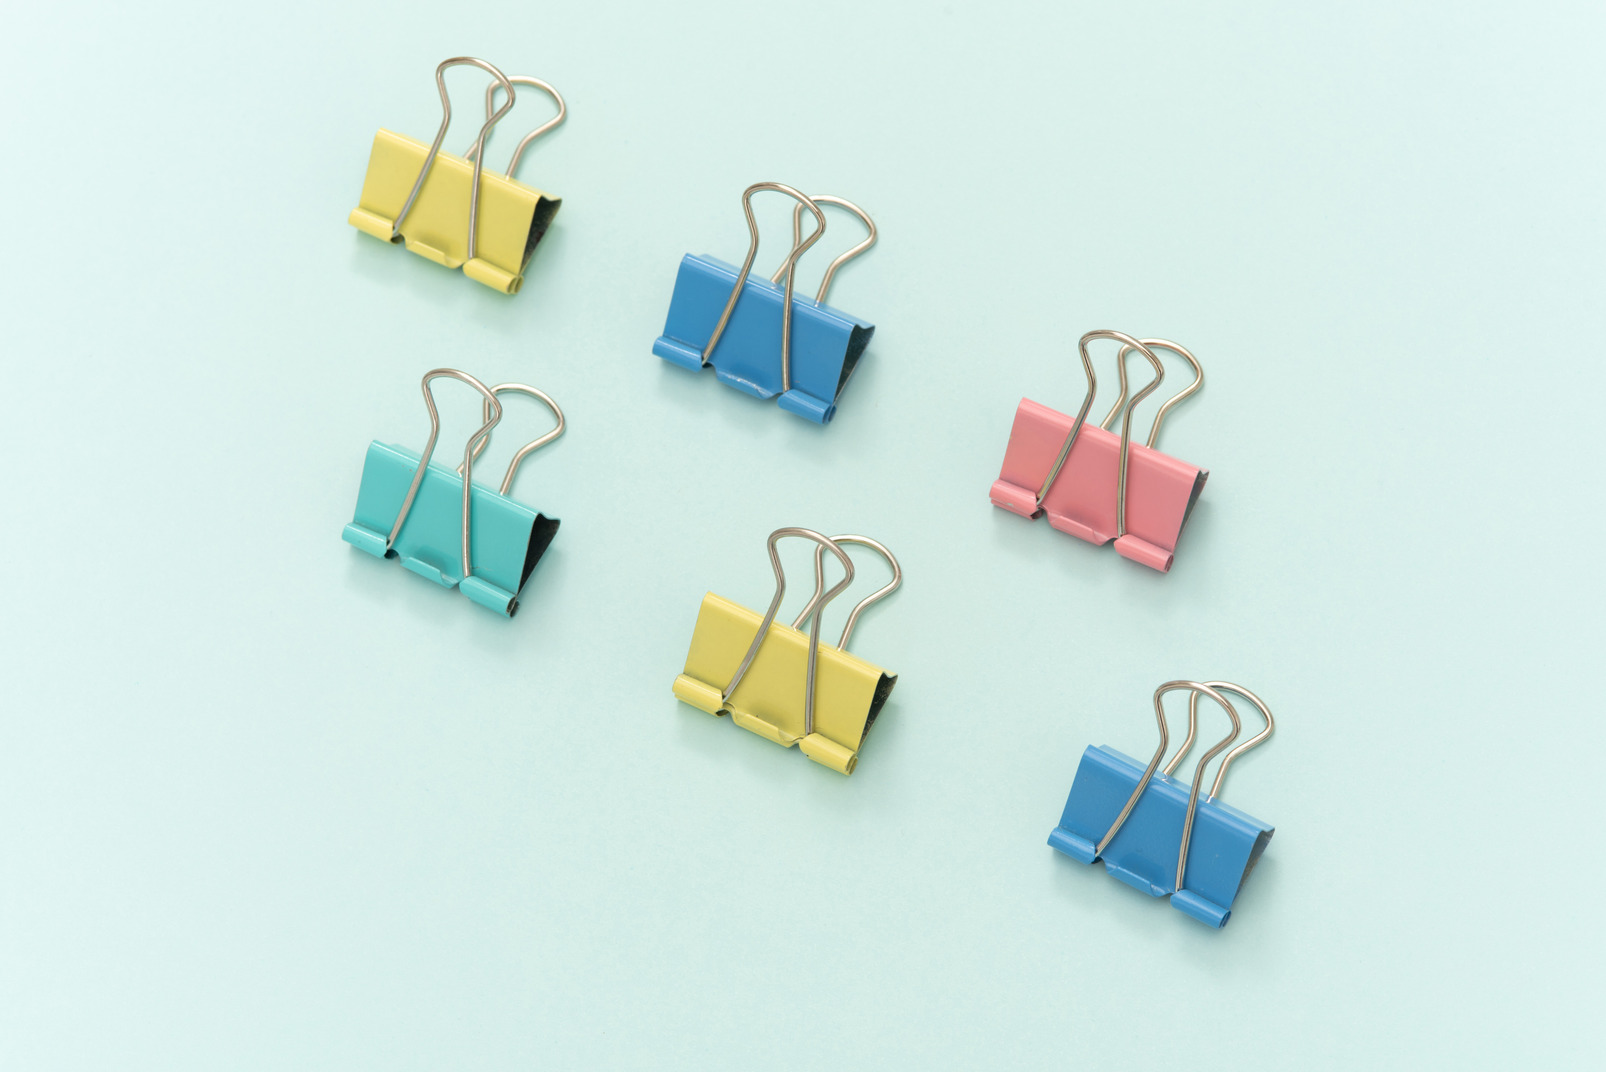 Colourful paper clips on blue background